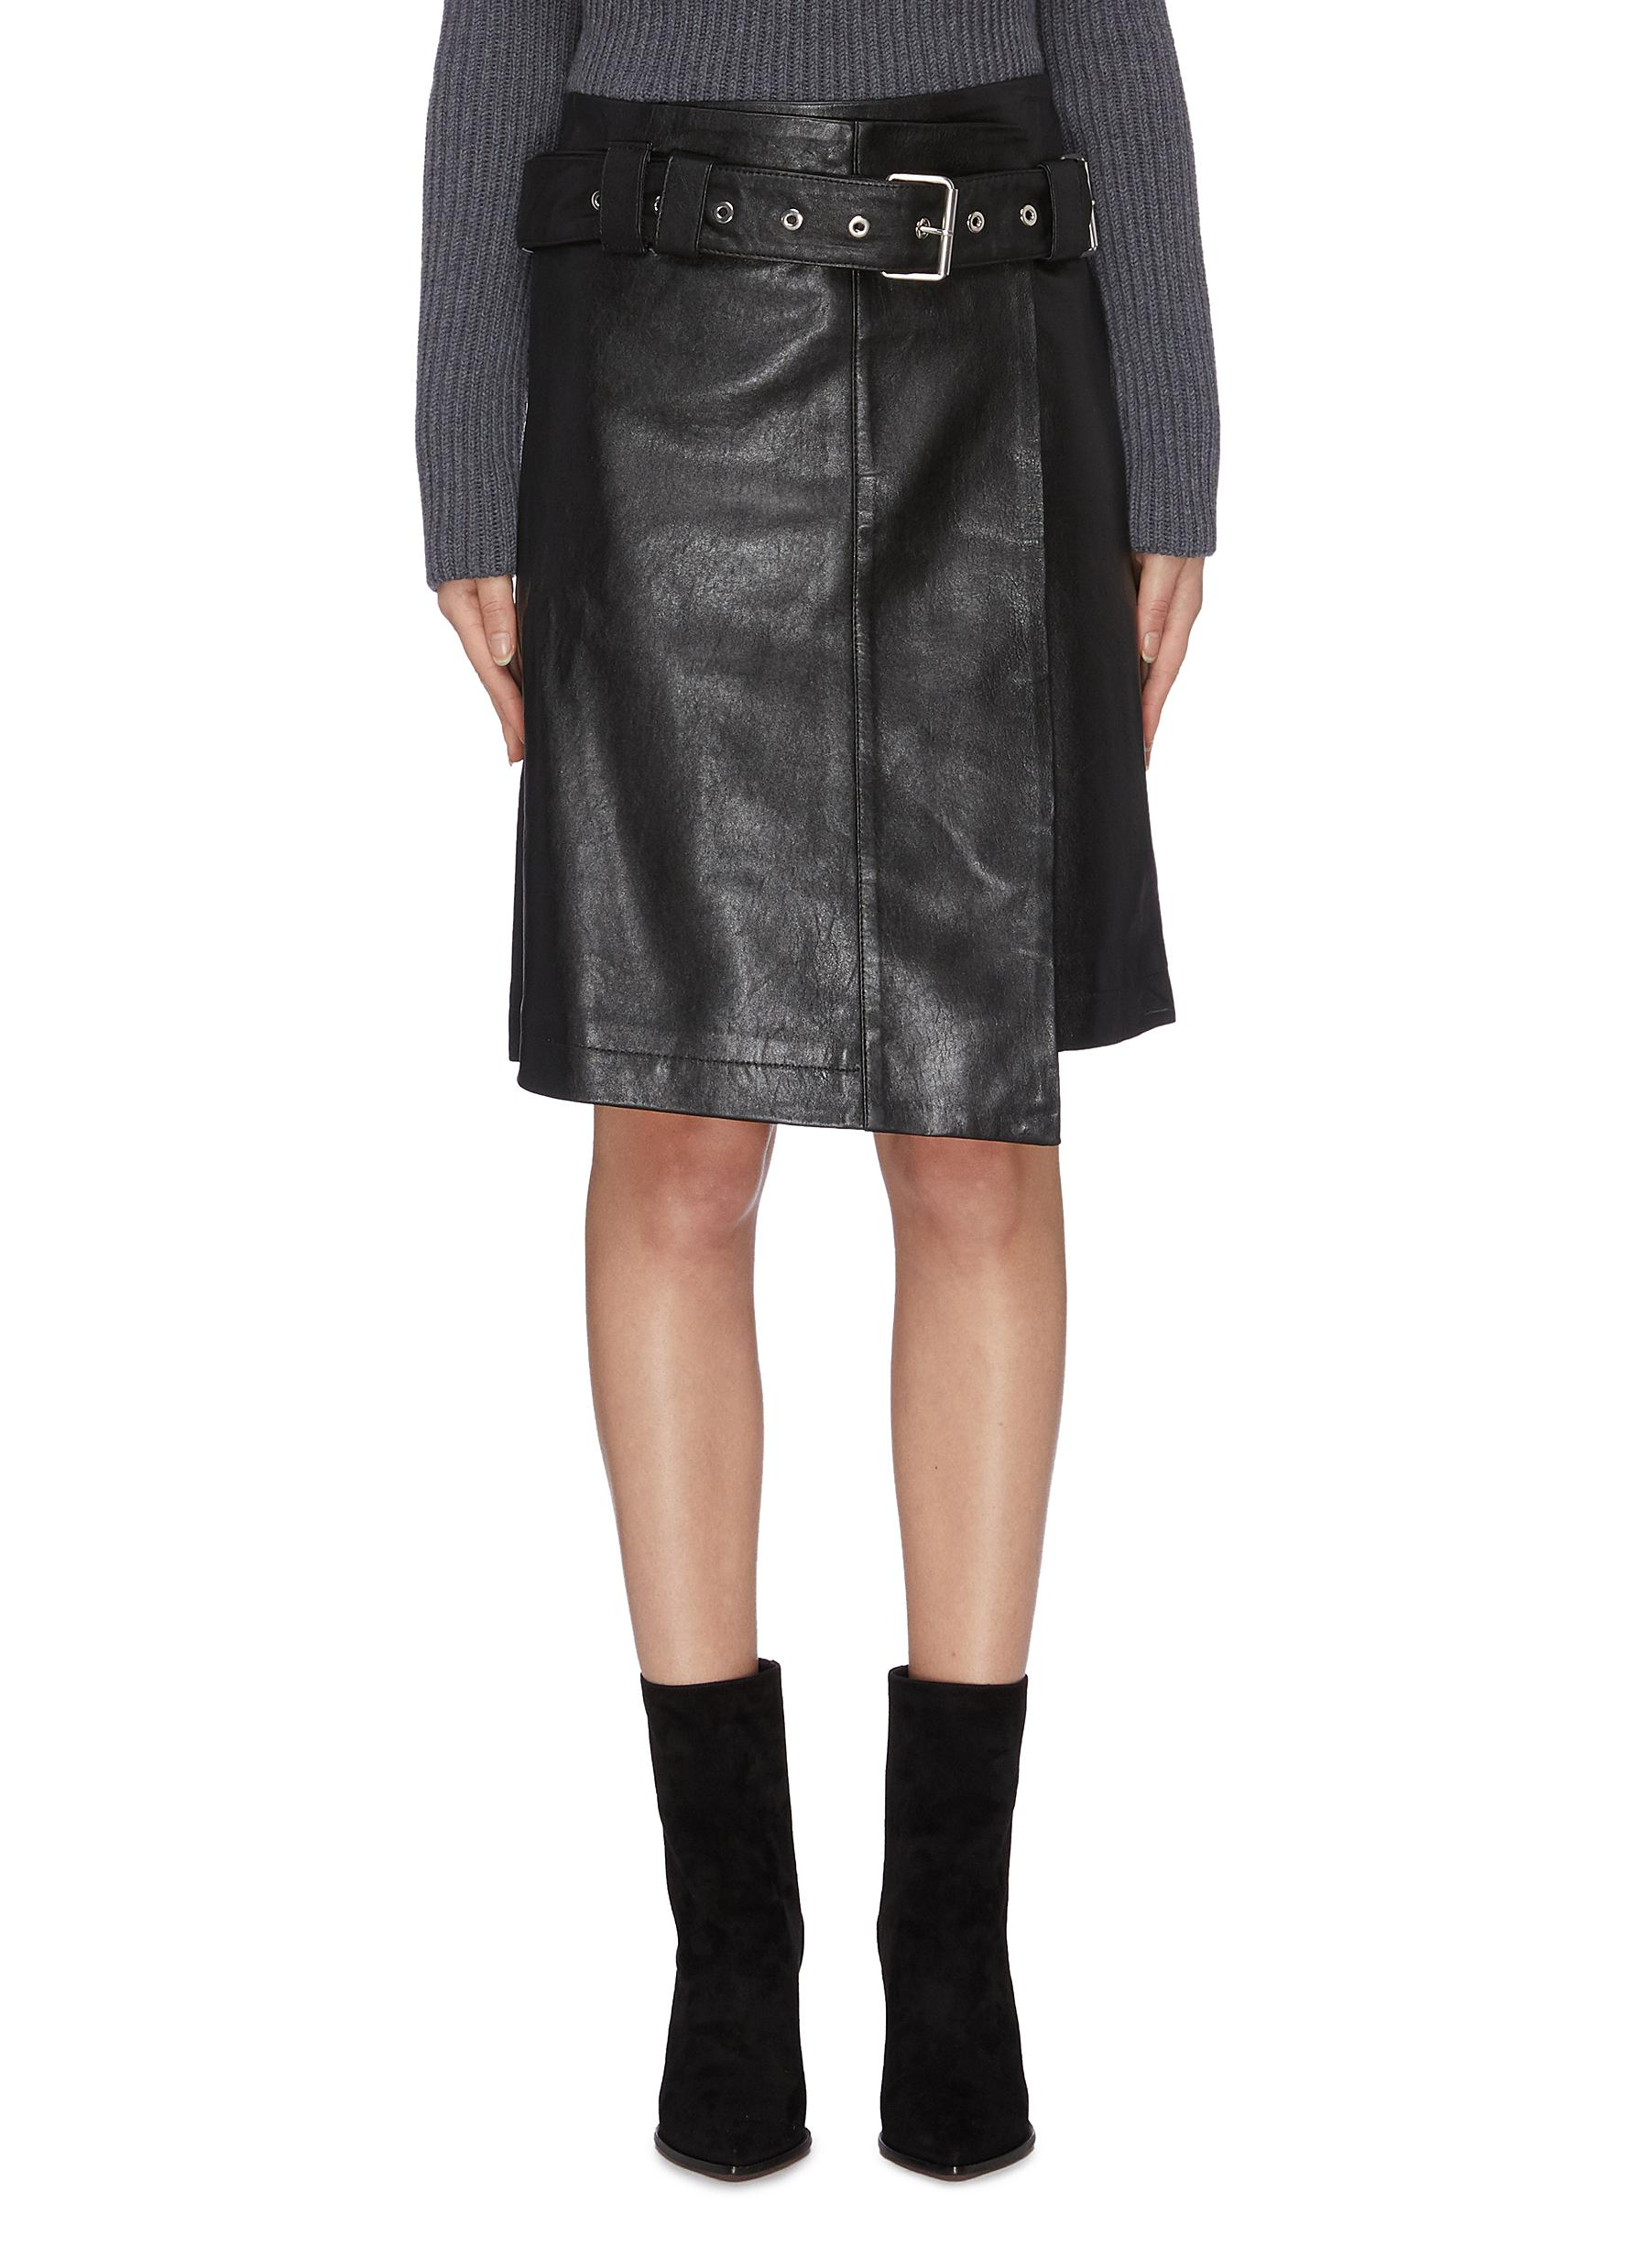 Belted asymmetric leather skirt by Proenza Schouler